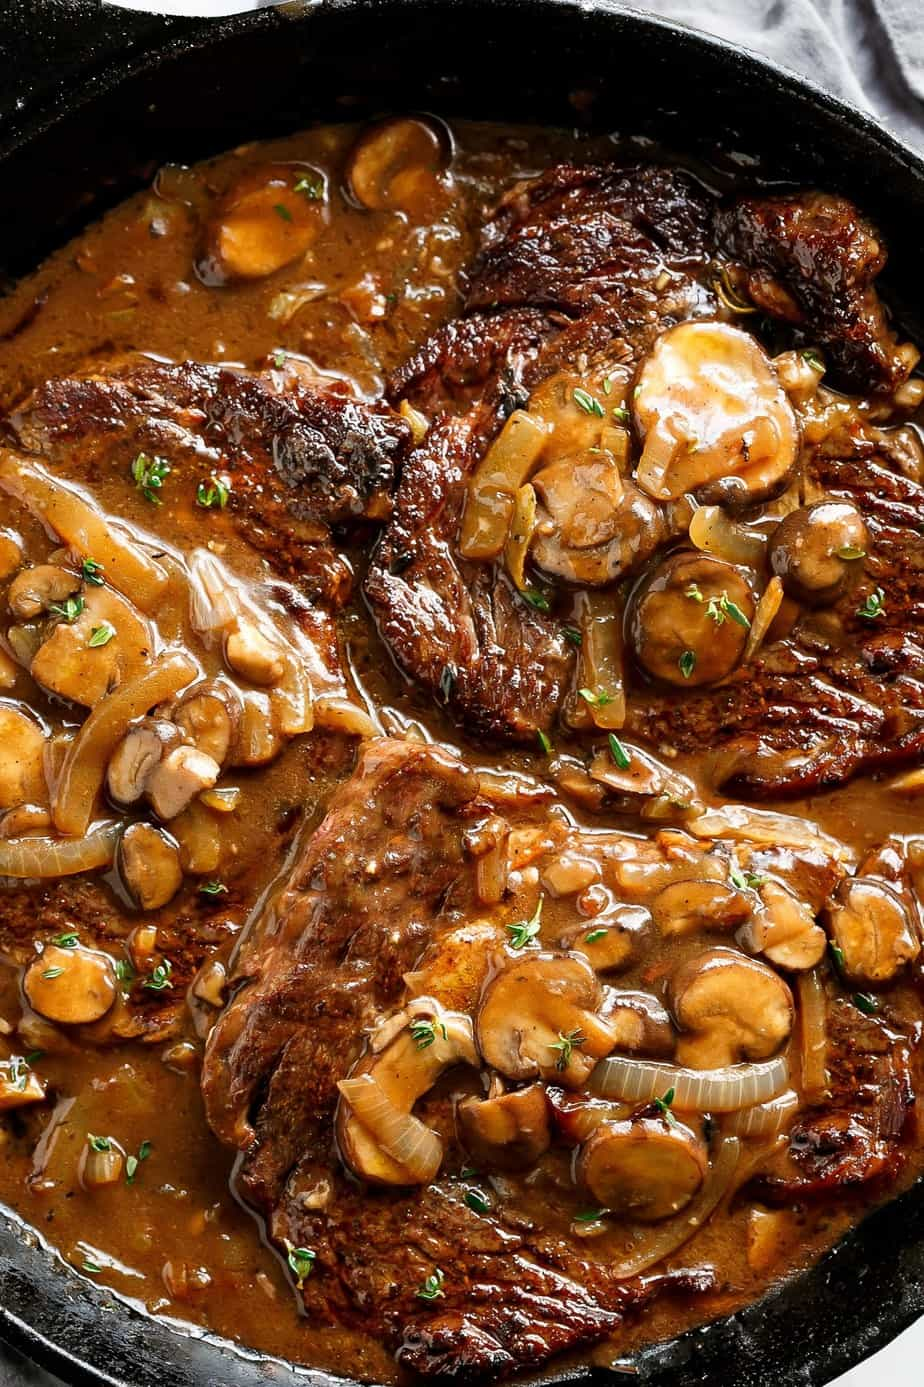 Steak-with-Mushroom-Sauce